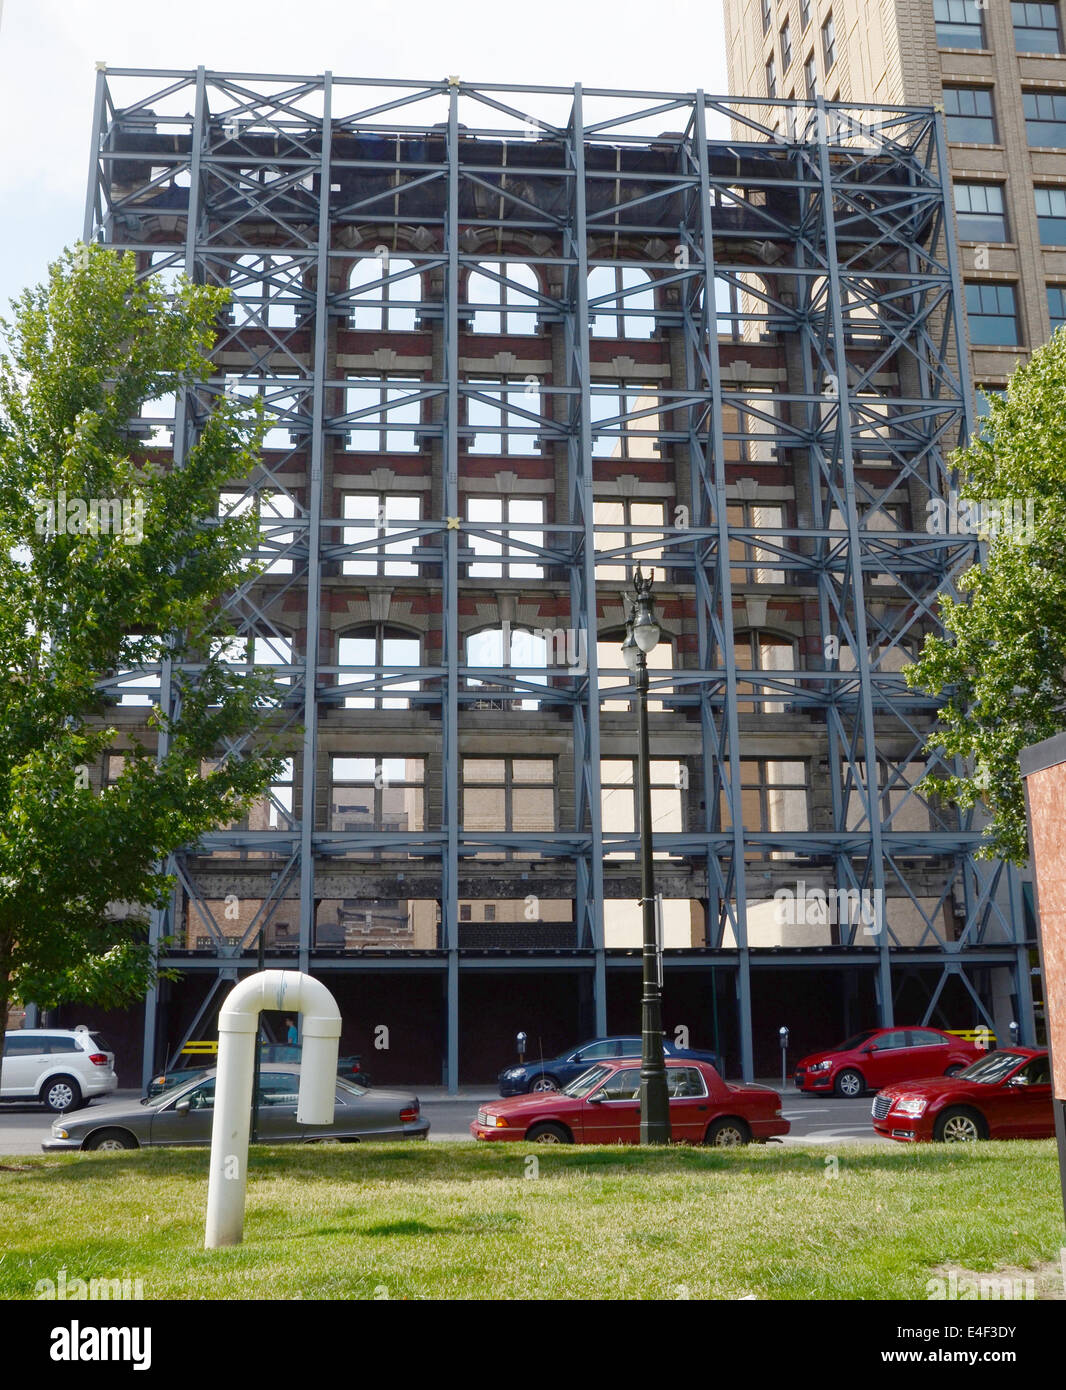 DETROIT, MI - JULY 6: This reinforced building facade in Detroit, MI, shown on July 6, 2014, is representative of - Stock Image